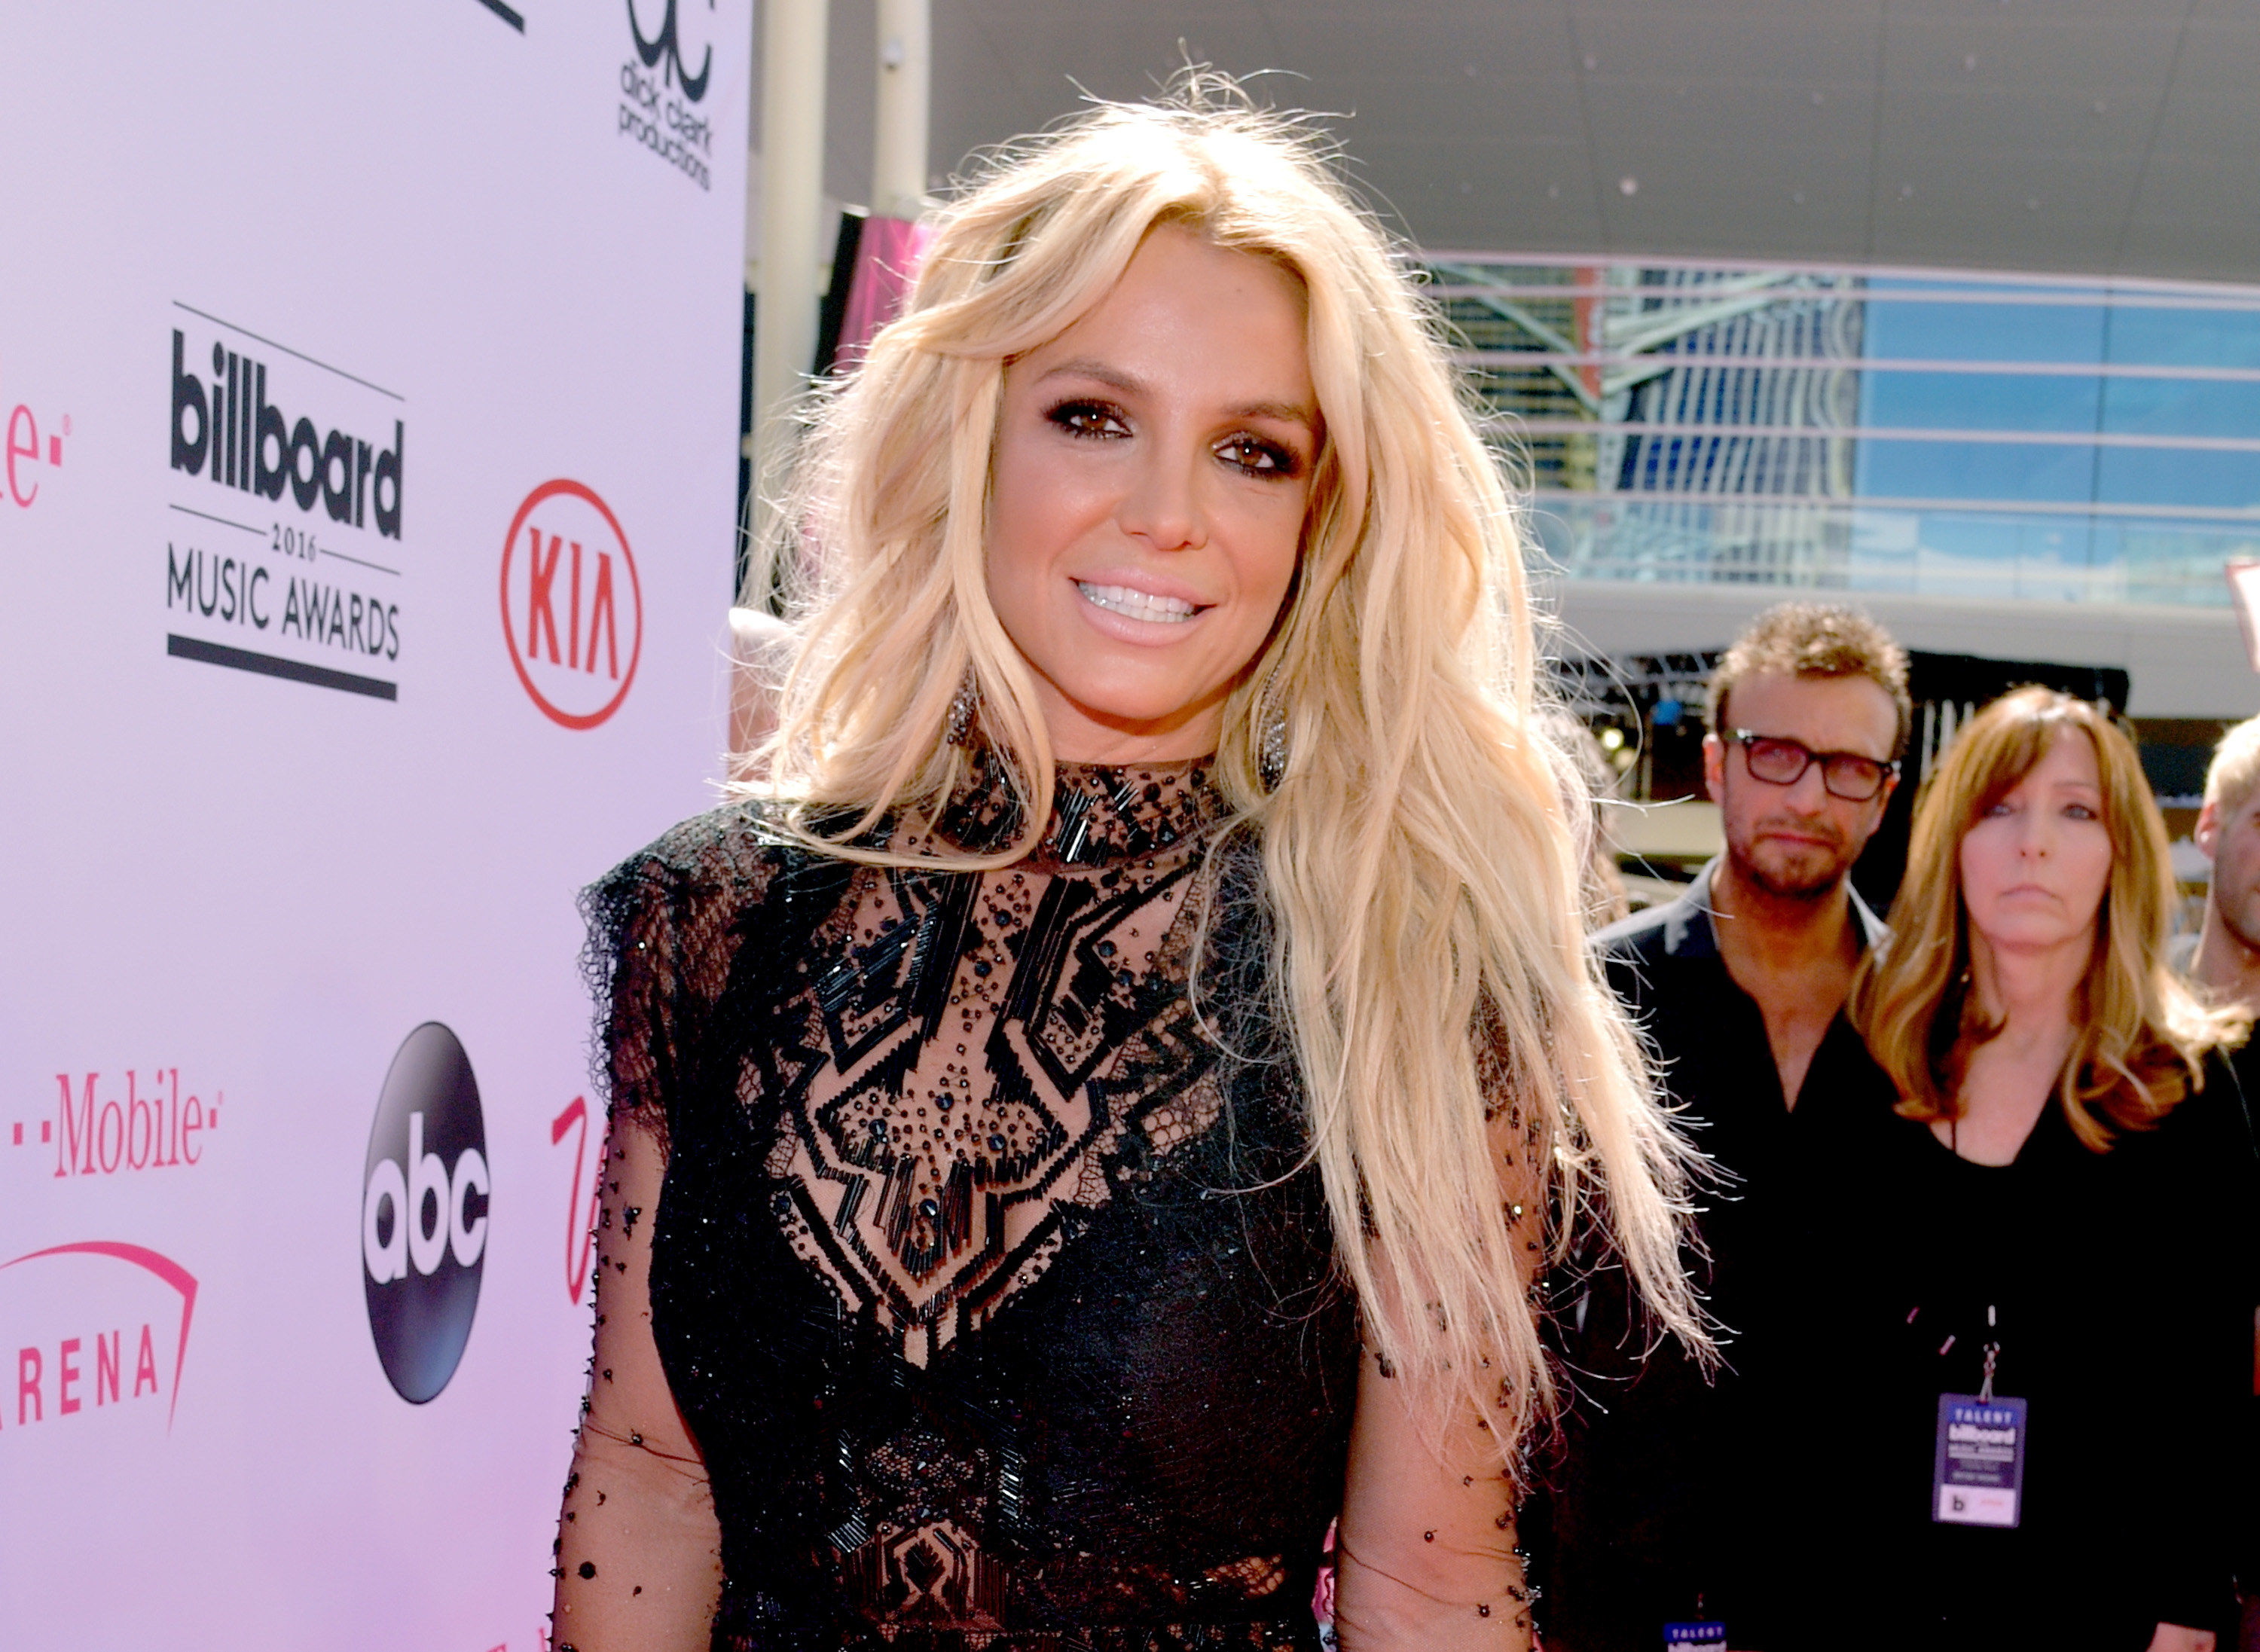 Britney smiles on a red carpet